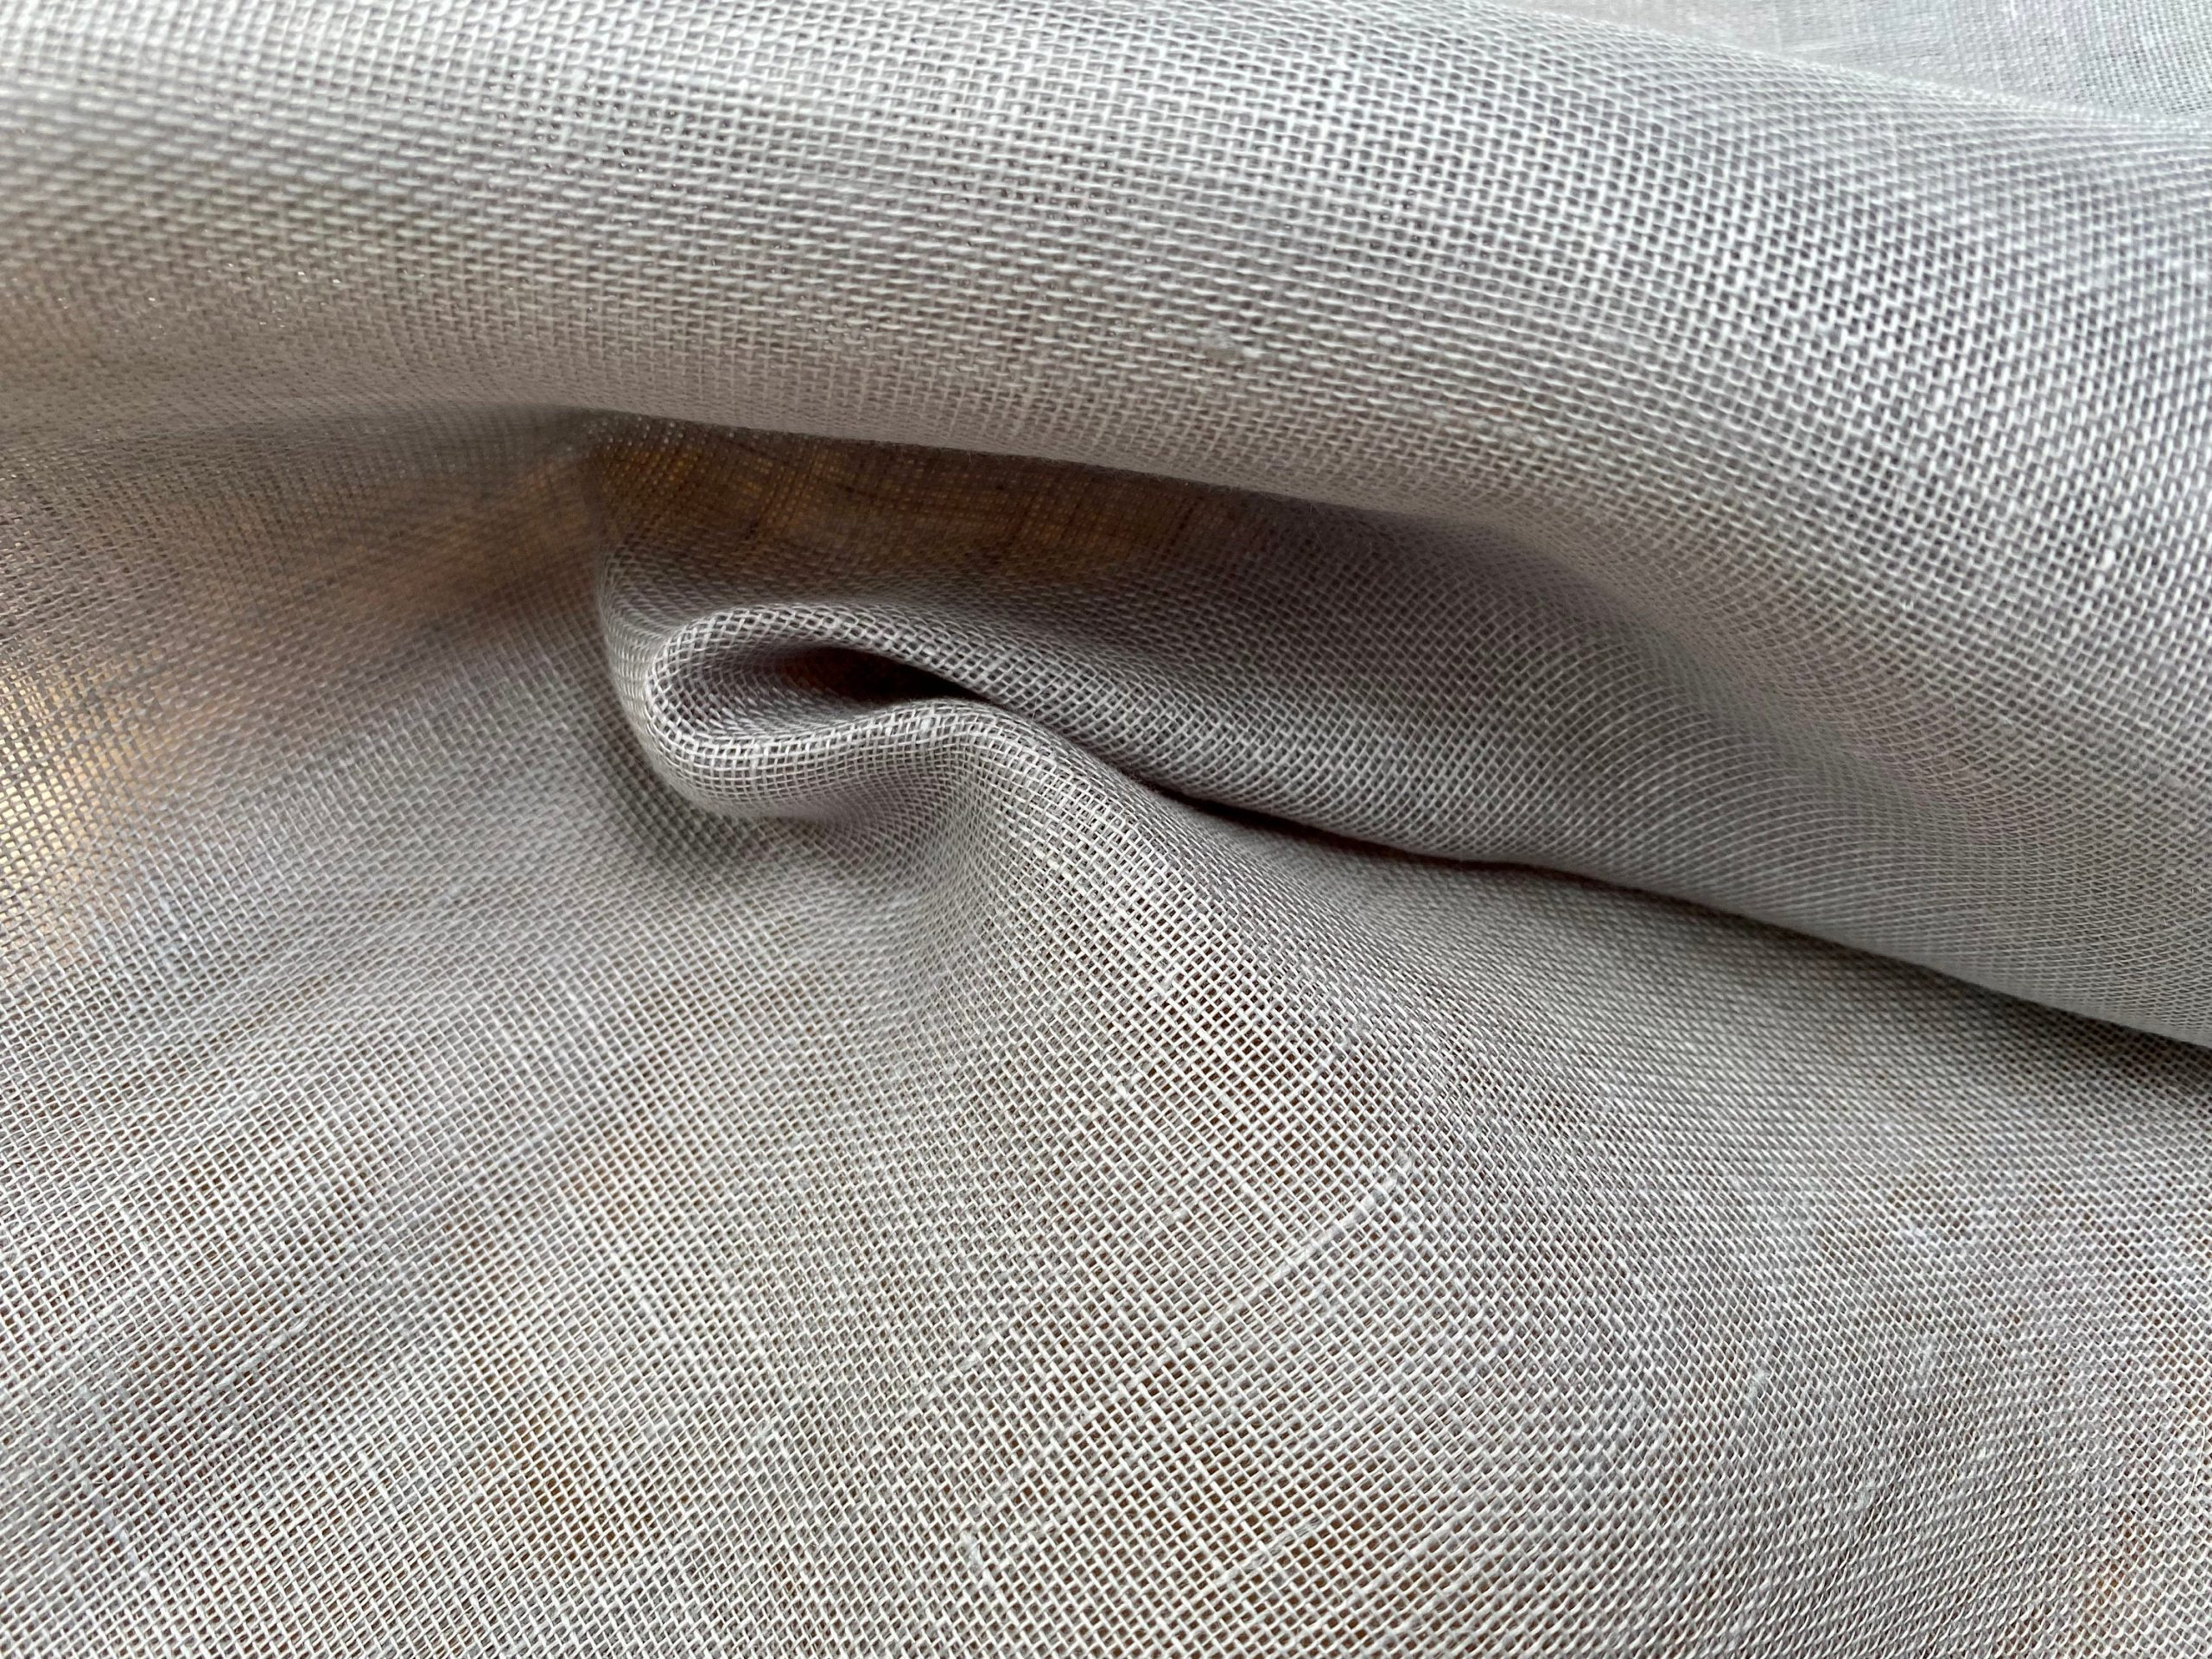 Extra Wide 100% Linen Fabric – Soft Linen Material for Home Decor, Curtains, Clothes – 118″/ 300cm wide – Plain GREY